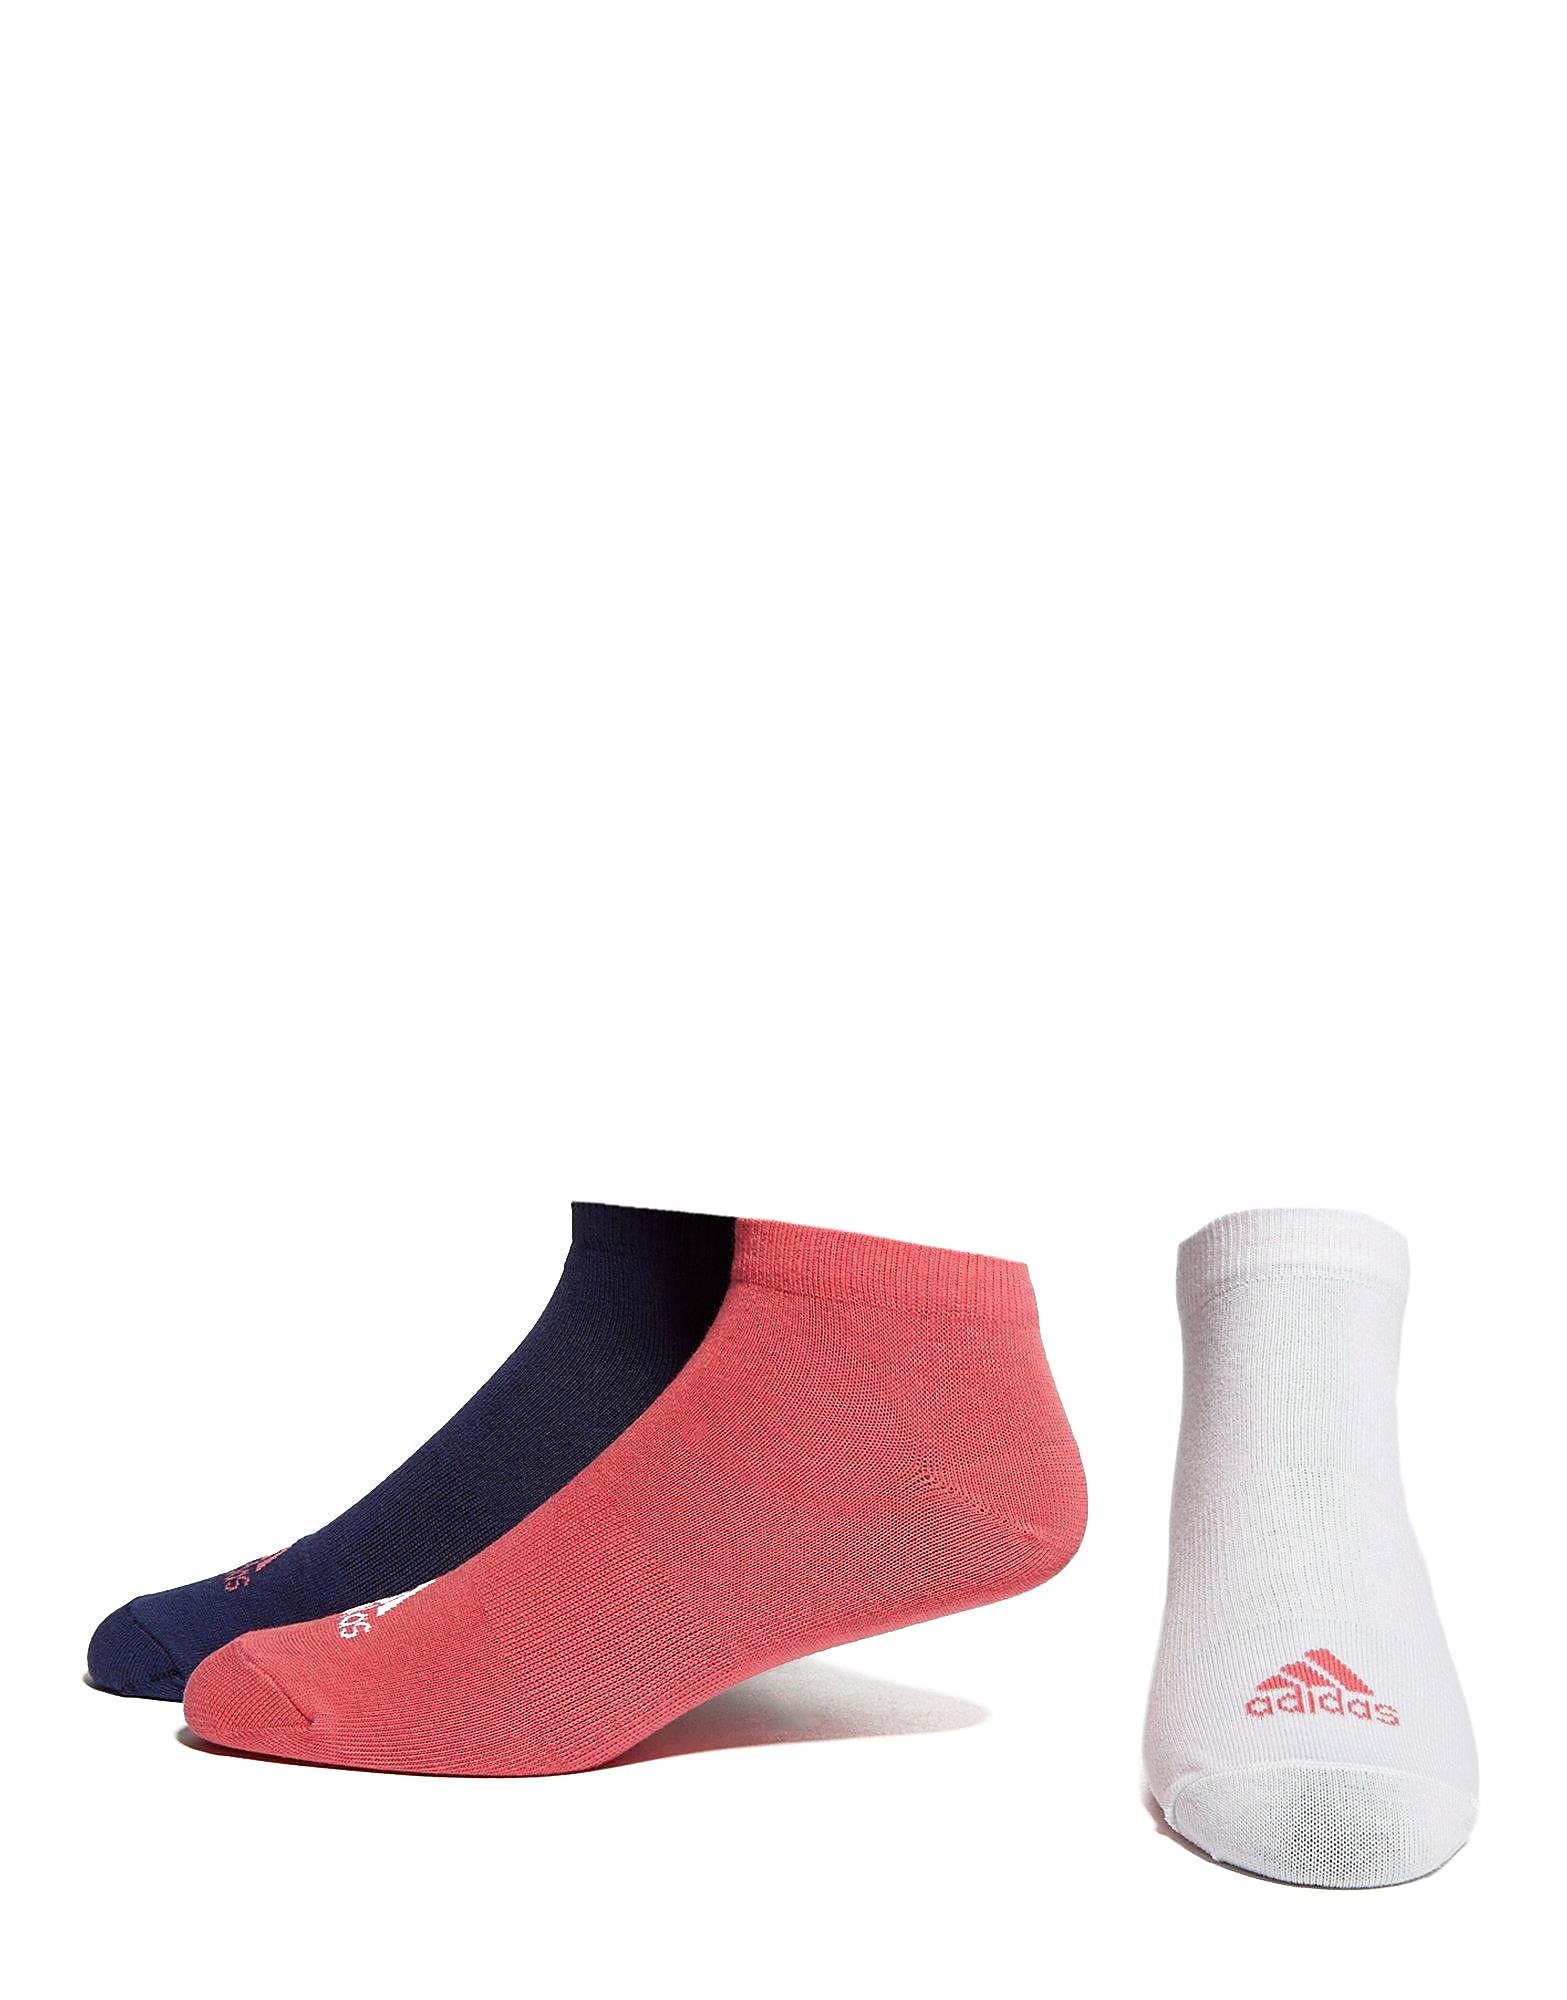 Image of   adidas 3 Pack Invisible Socks